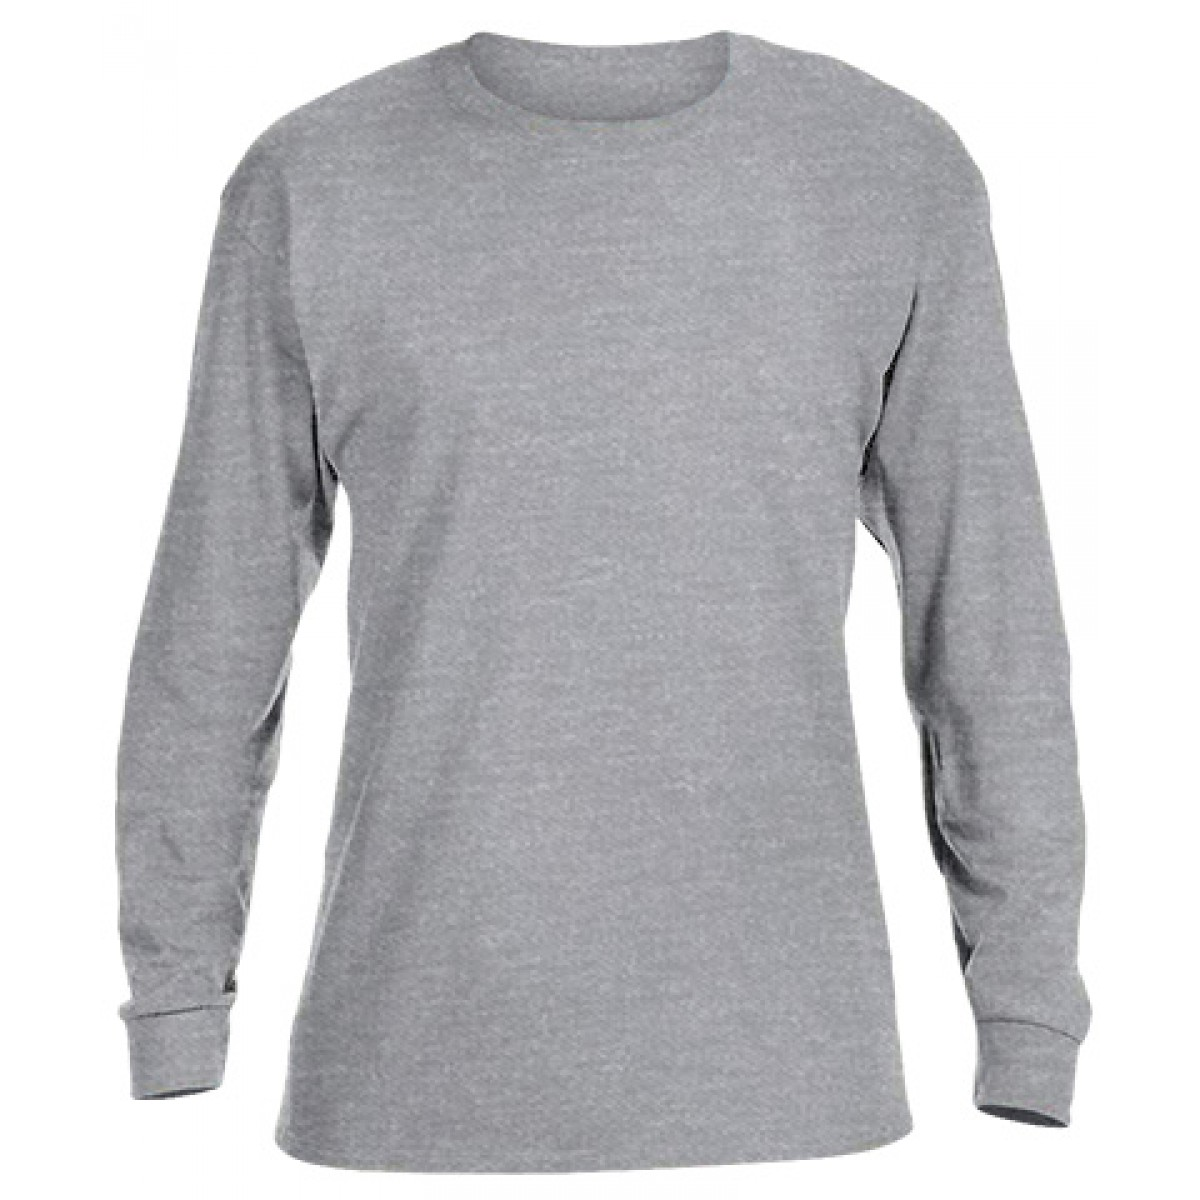 Basic Long Sleeve Crew Neck -Ash Gray-S